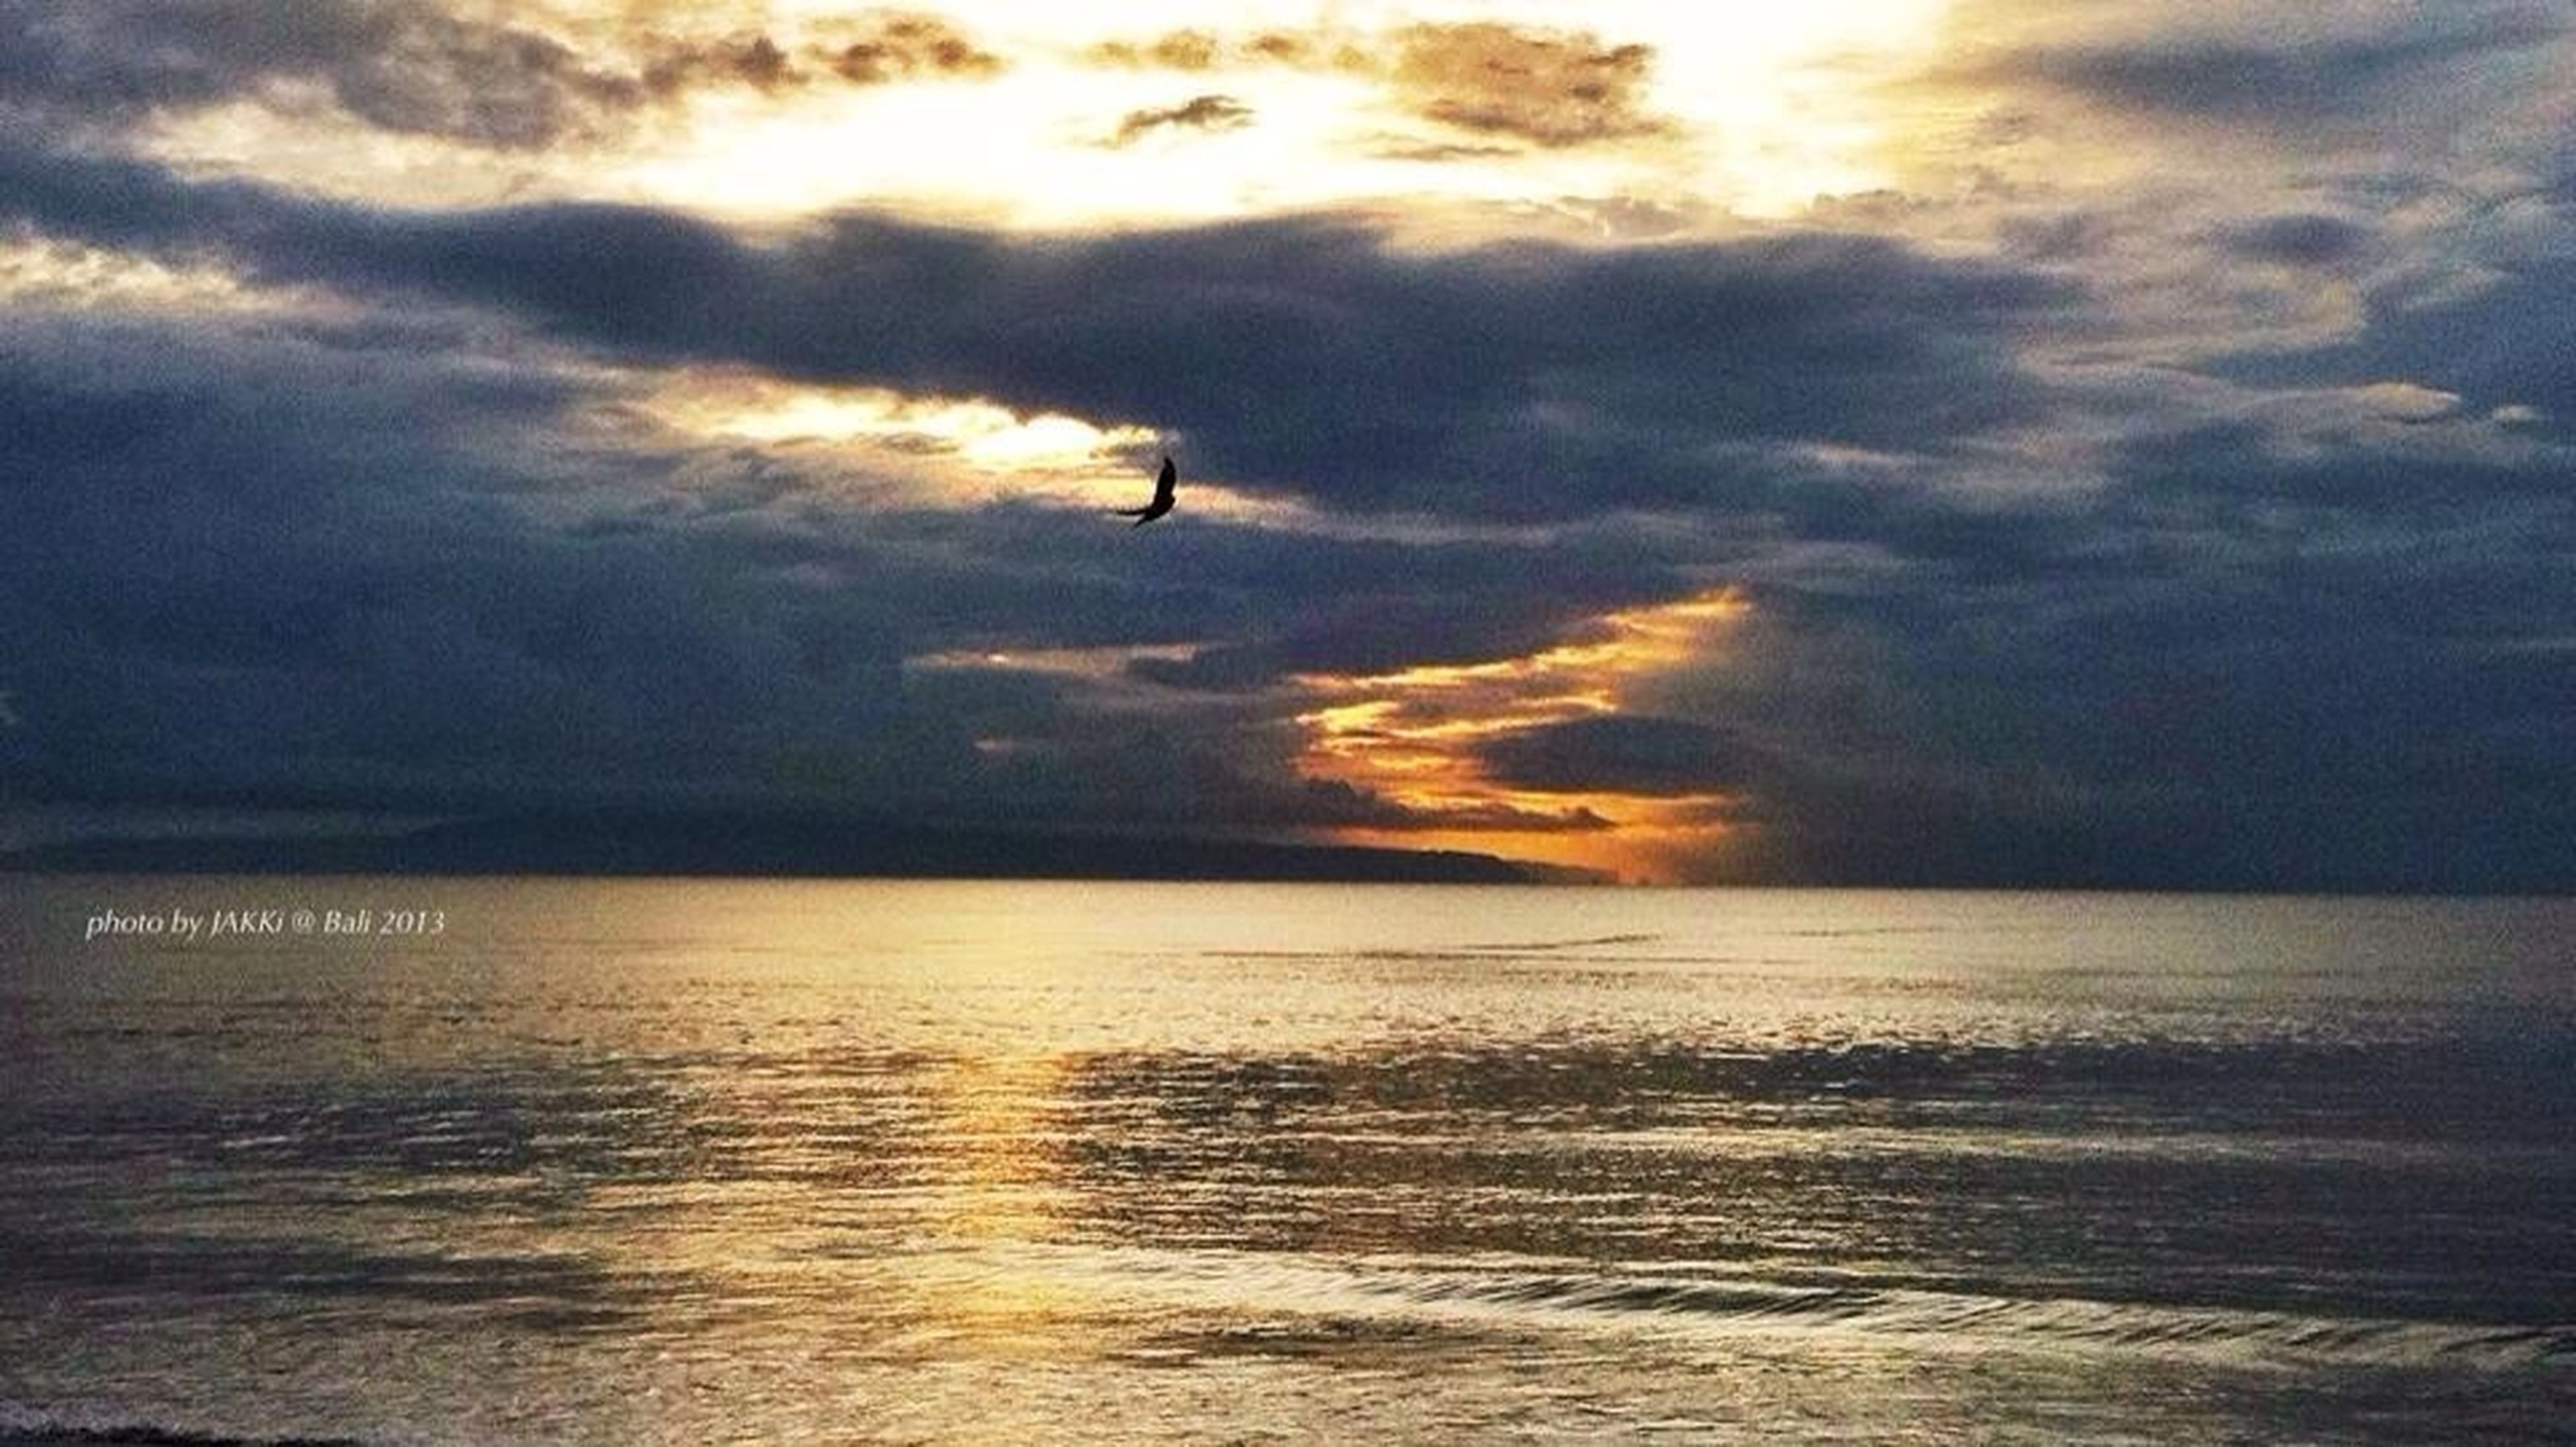 sky, bird, water, sea, sunset, scenics, horizon over water, cloud - sky, tranquil scene, beauty in nature, animal themes, tranquility, flying, one animal, animals in the wild, nature, silhouette, wildlife, waterfront, cloudy